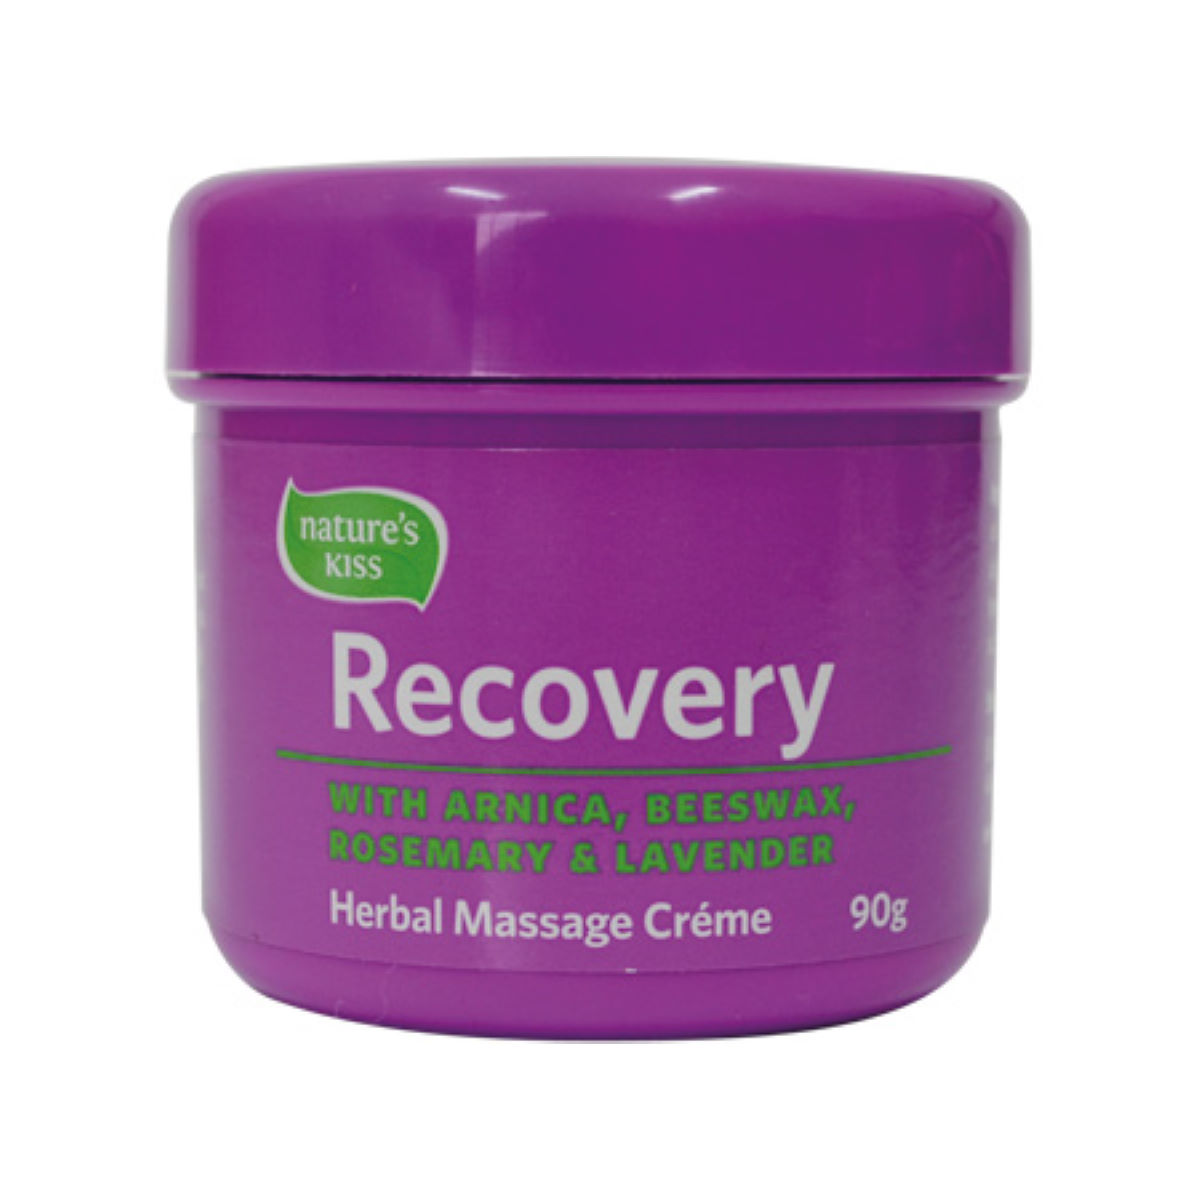 Image of Crème de massage Natures Kiss Recovery 90 g - 90g